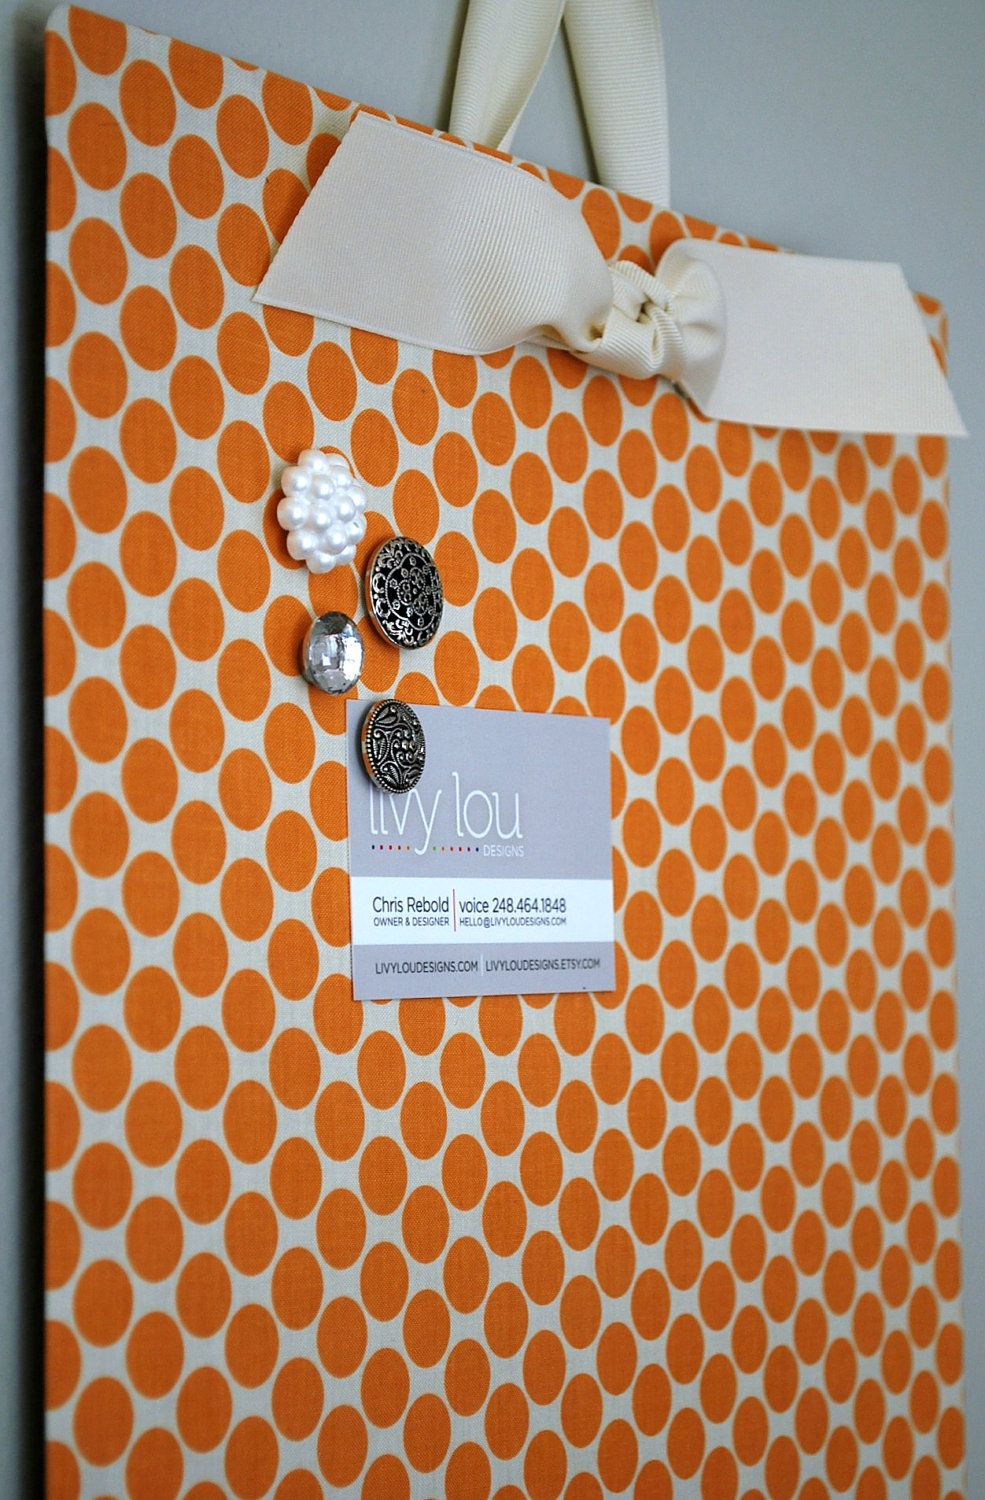 Cover A Flat Cookie Sheet 1 Store With Fabric And Get An Instant